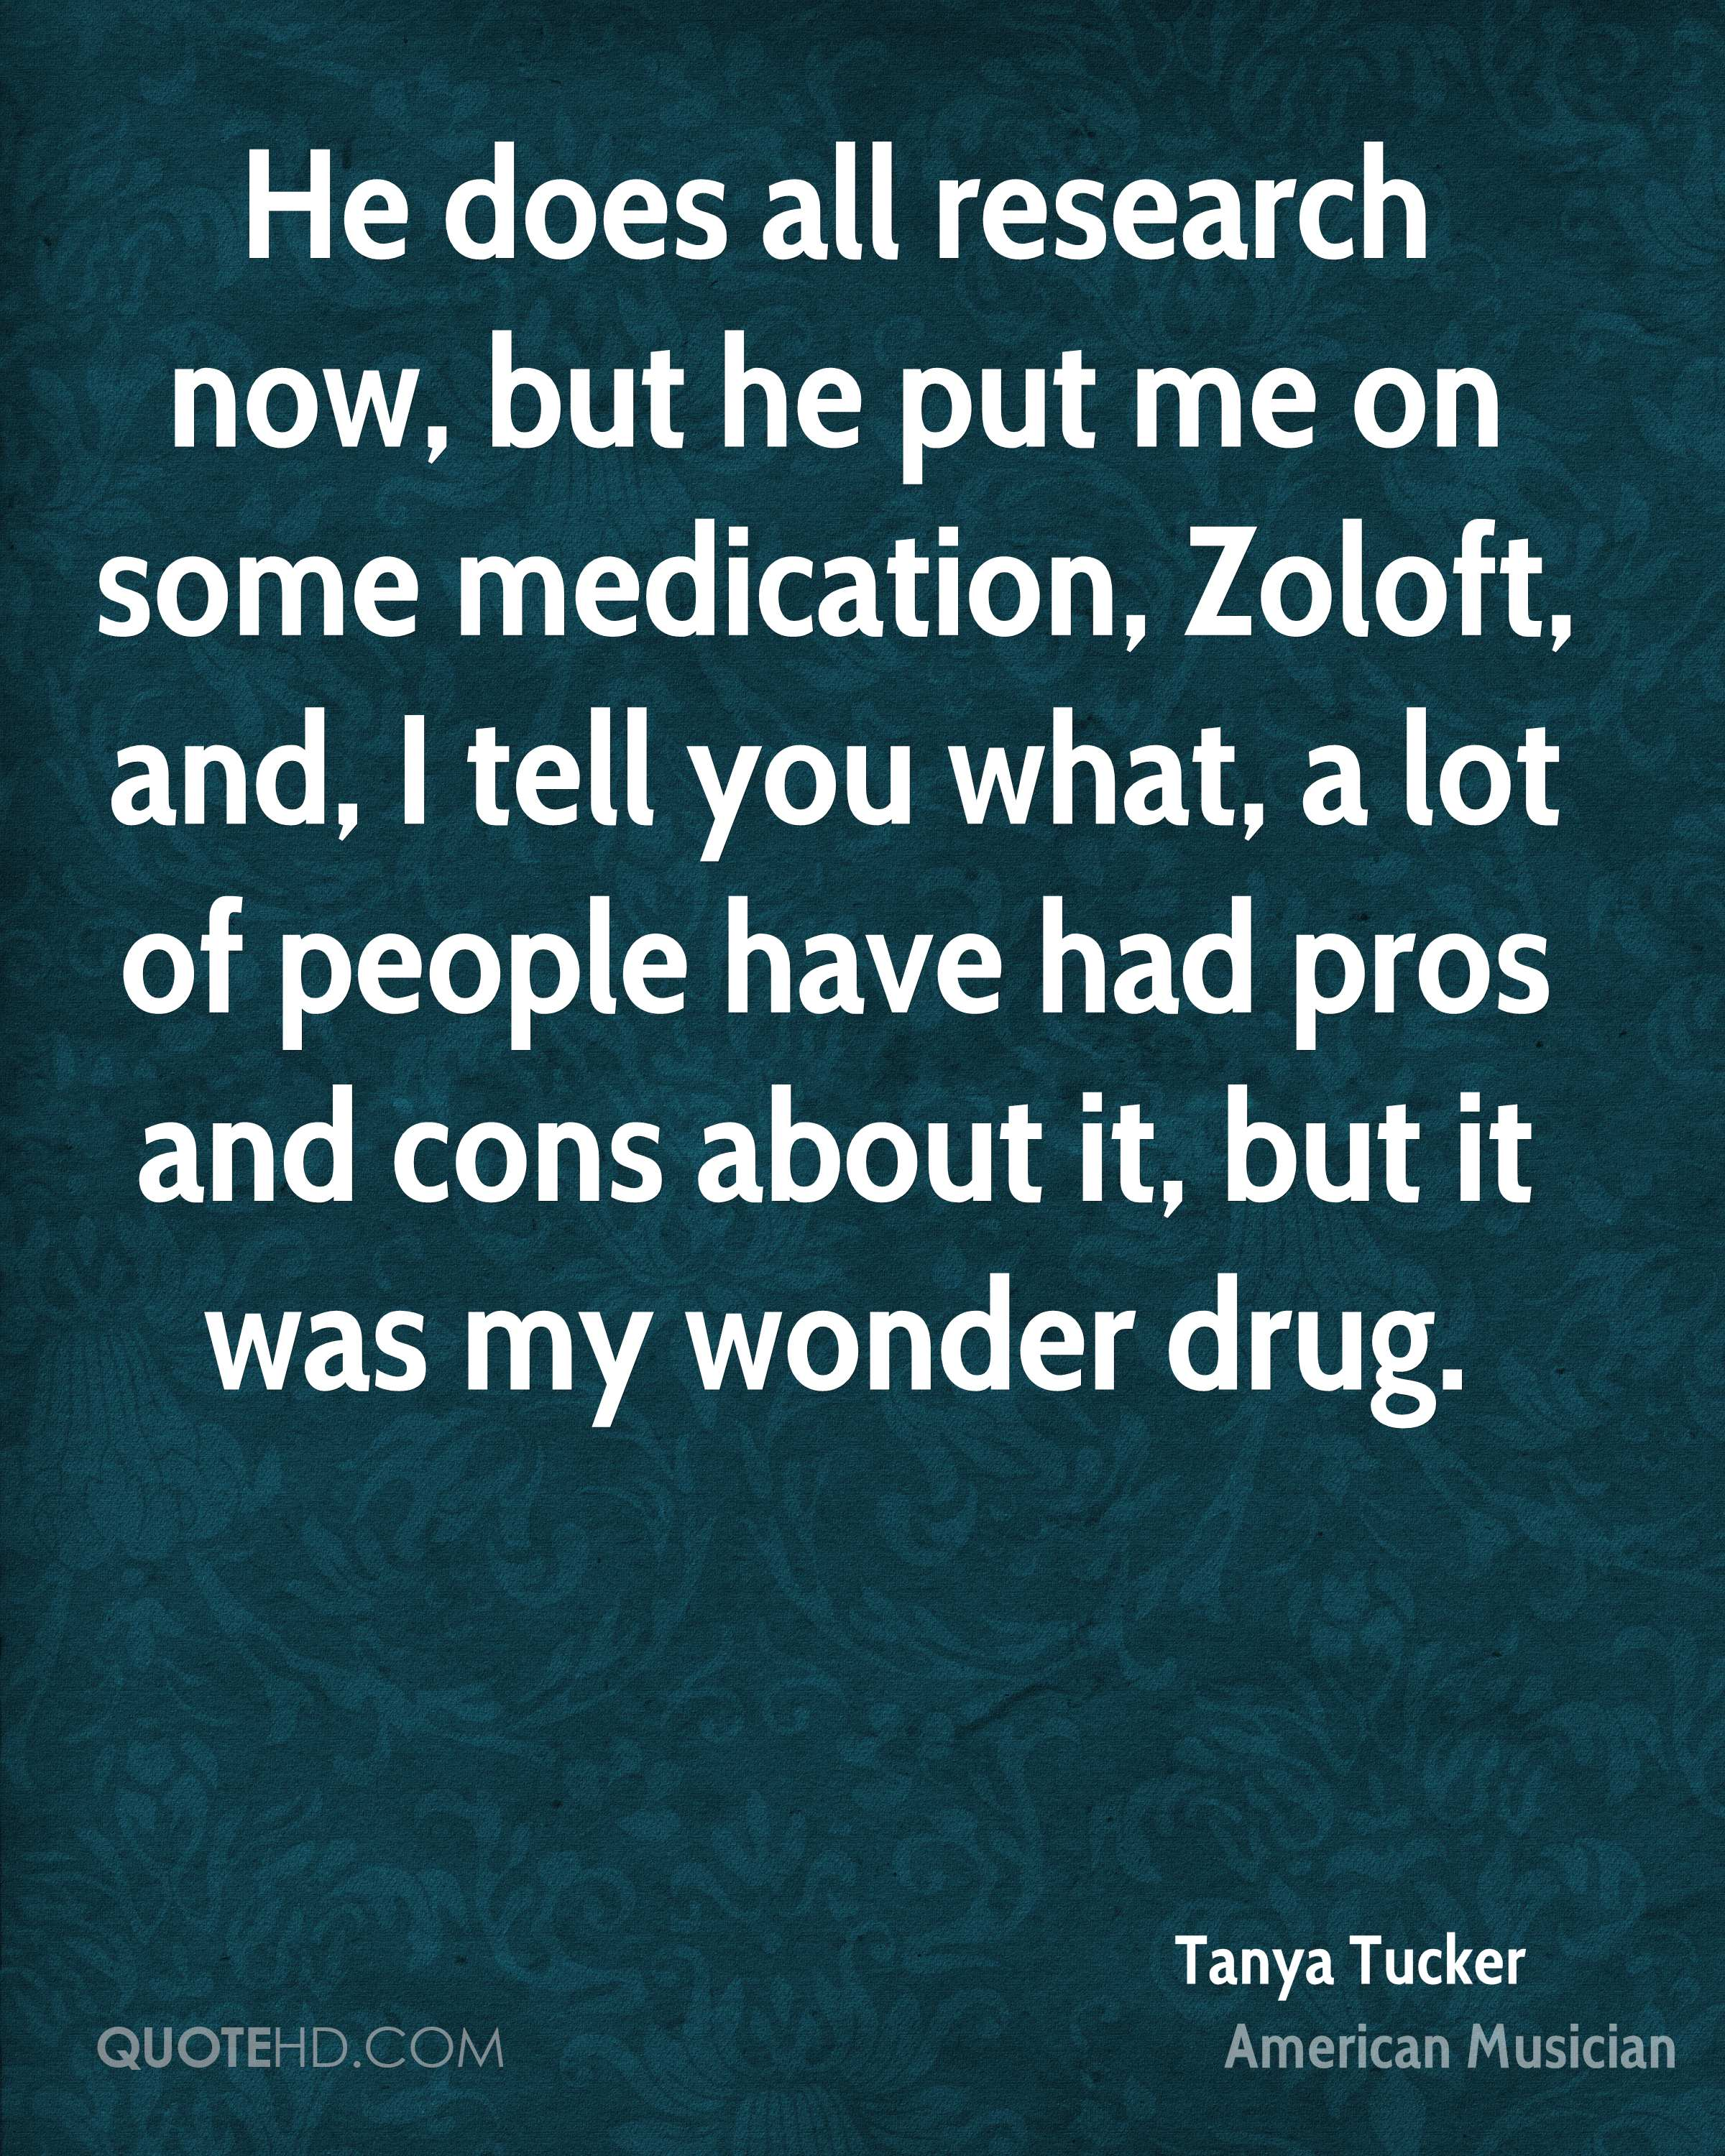 He does all research now, but he put me on some medication, Zoloft, and, I tell you what, a lot of people have had pros and cons about it, but it was my wonder drug.